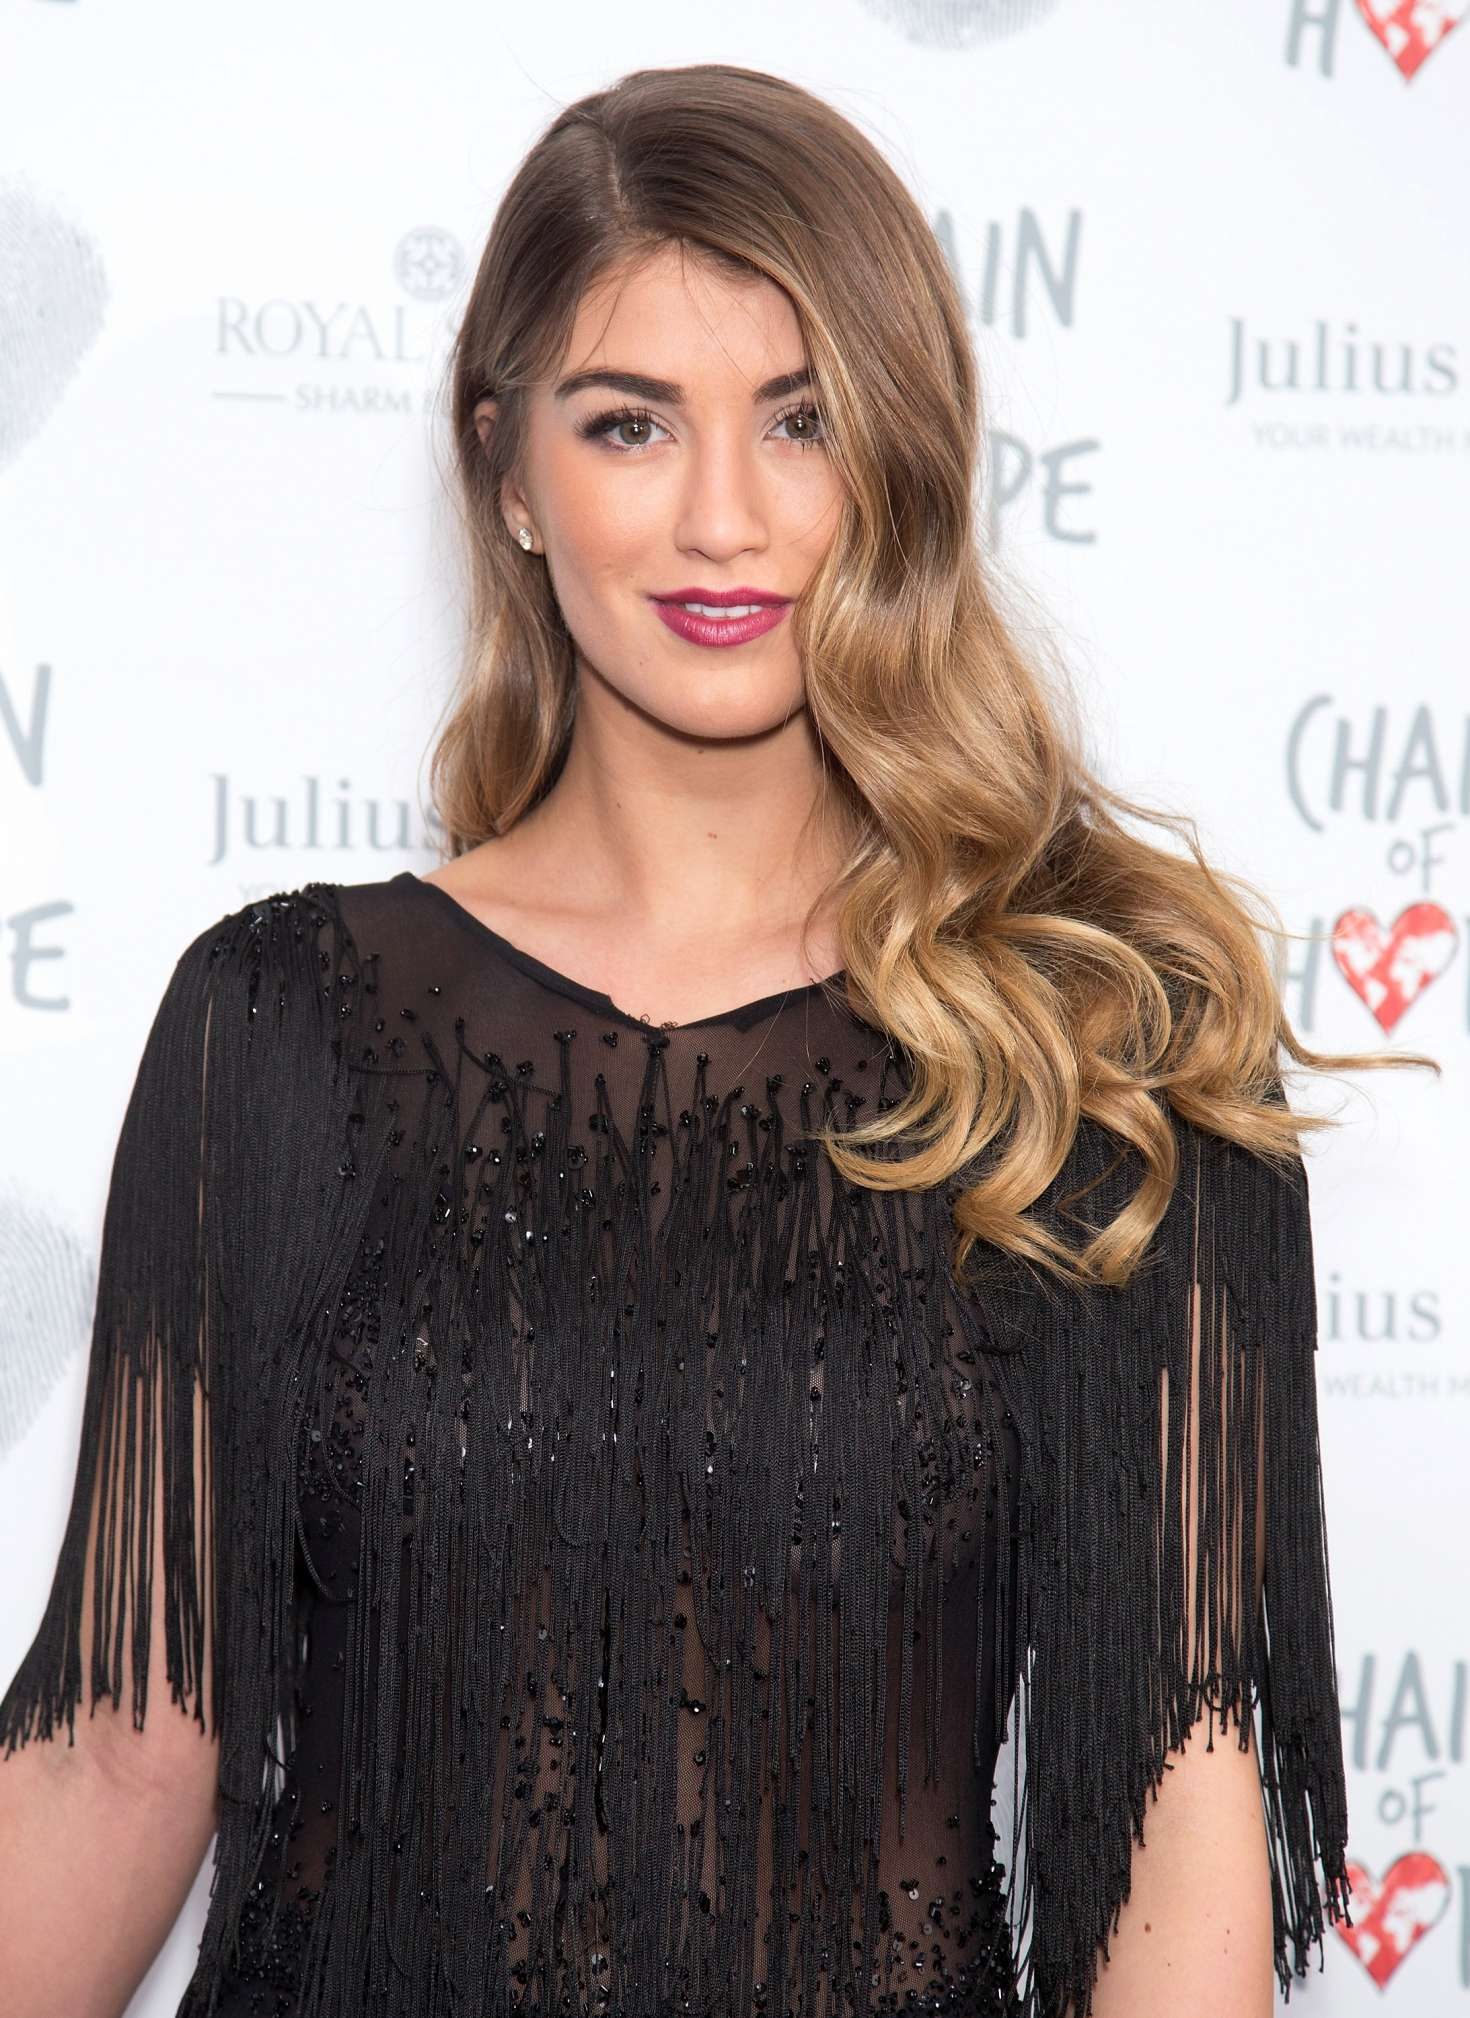 Amy Willerton 2016 : Amy Willerton: Chain Of Hope Annual Gala Ball 2016 -17